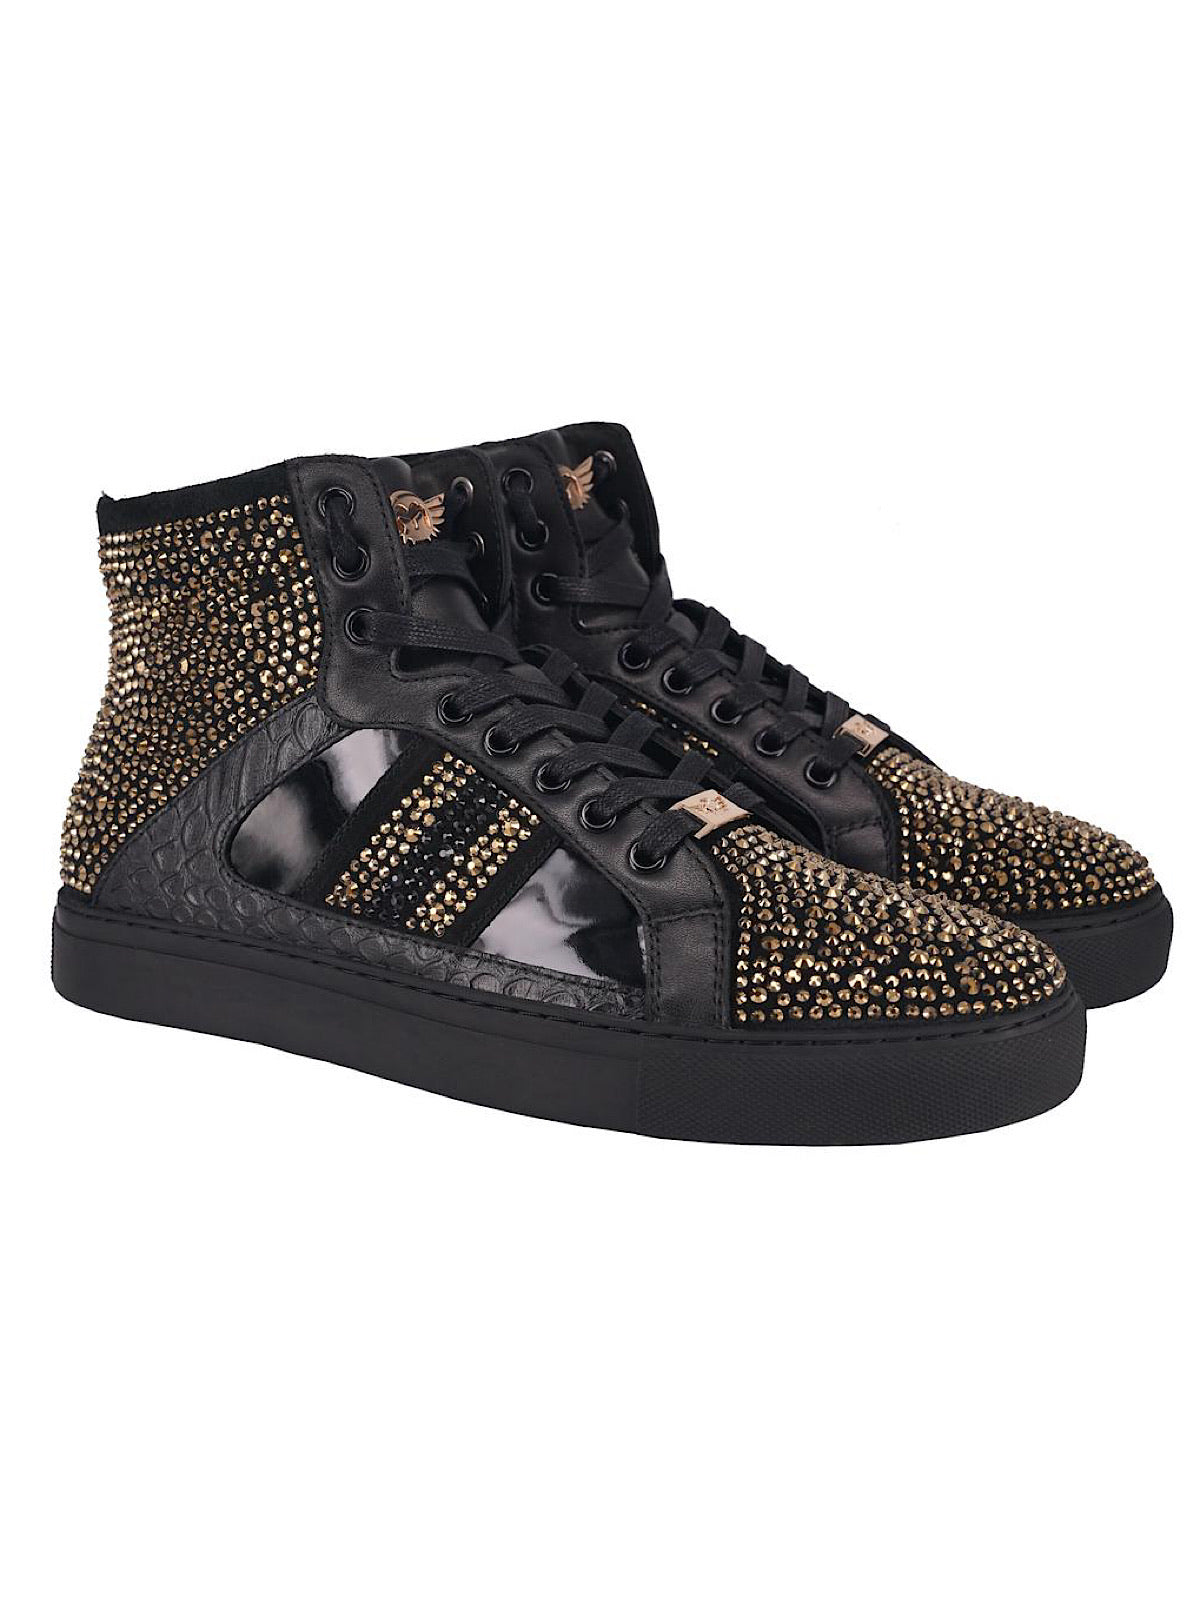 Ferrari Massari Shoes - The Earned Stripes Hustler - Black And Gold